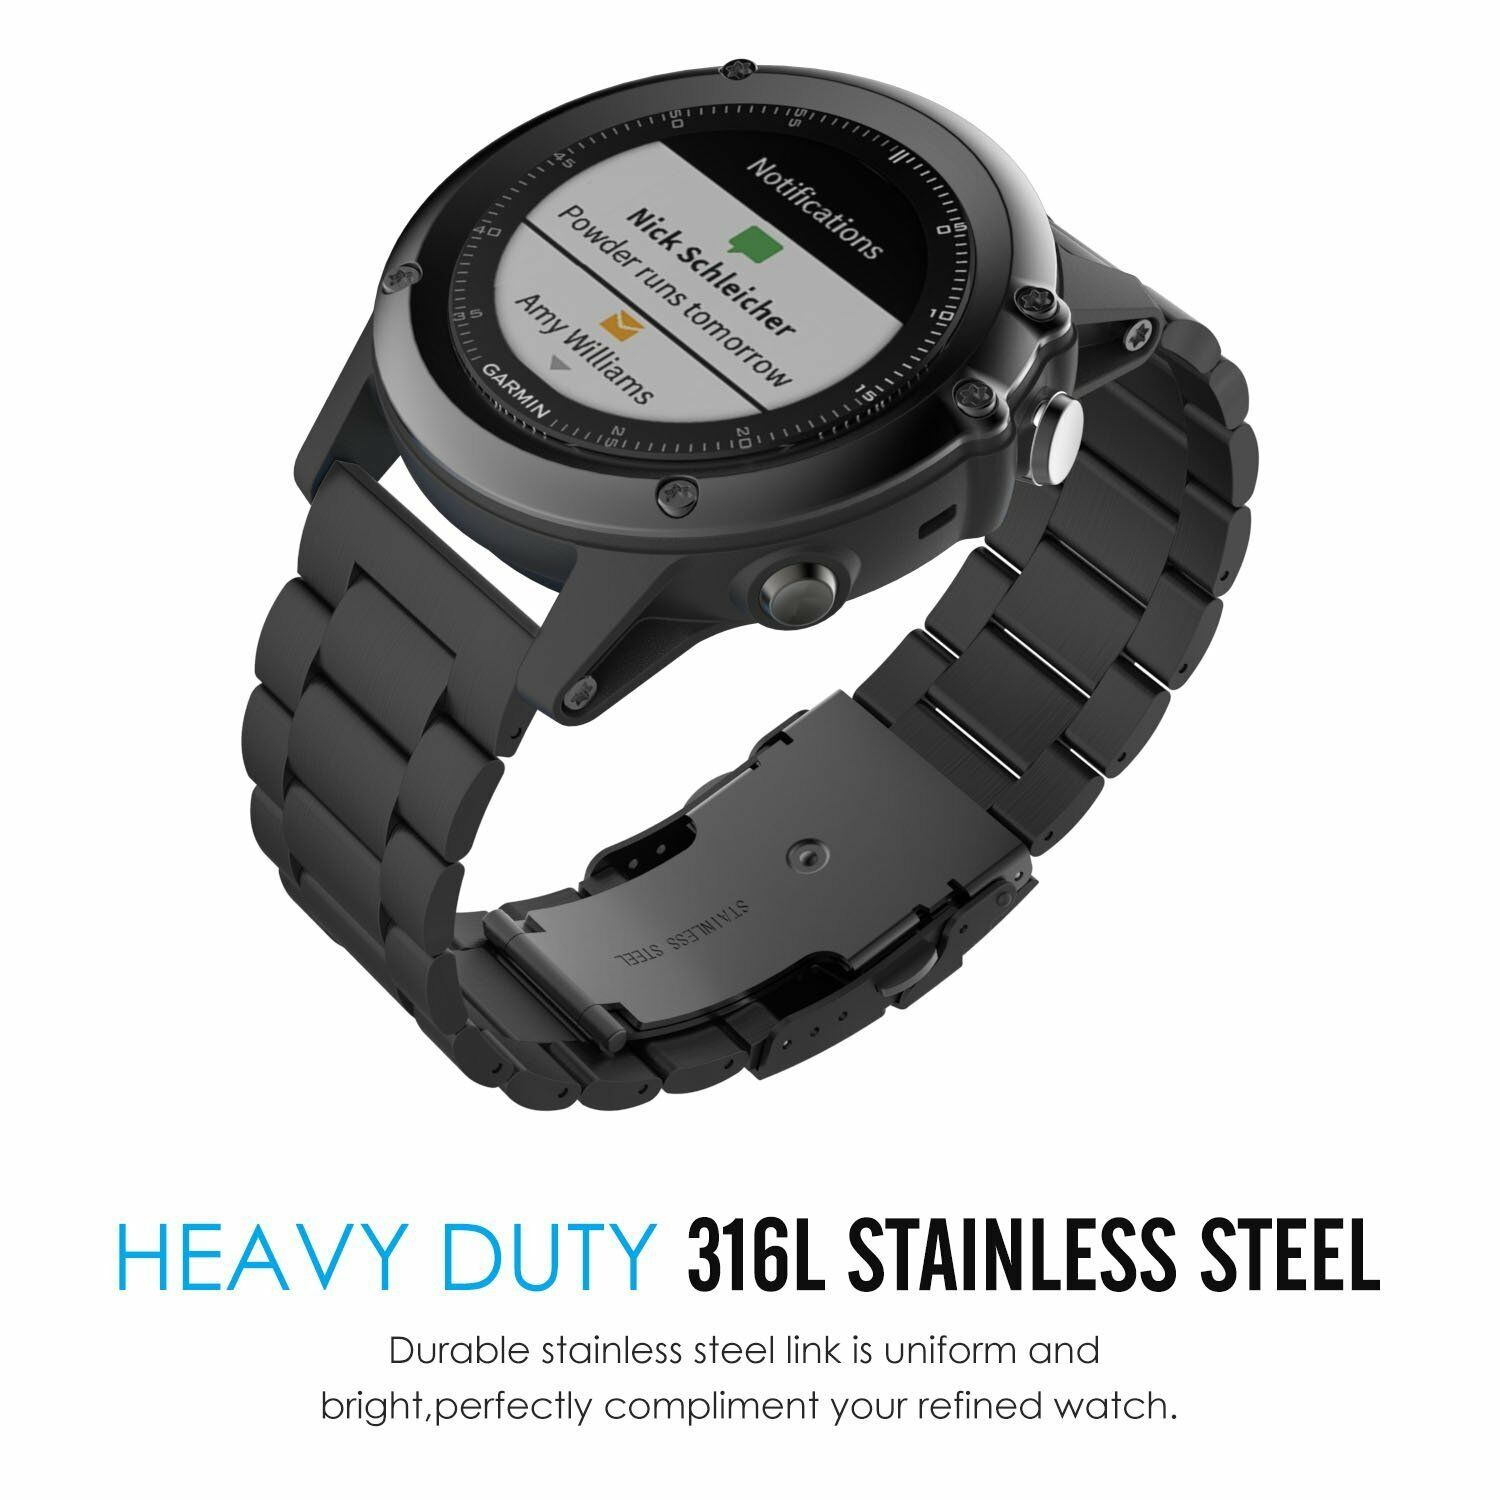 Stainless Steel Watch Wrist Band Strap Garmin Fenix 3 / Feni